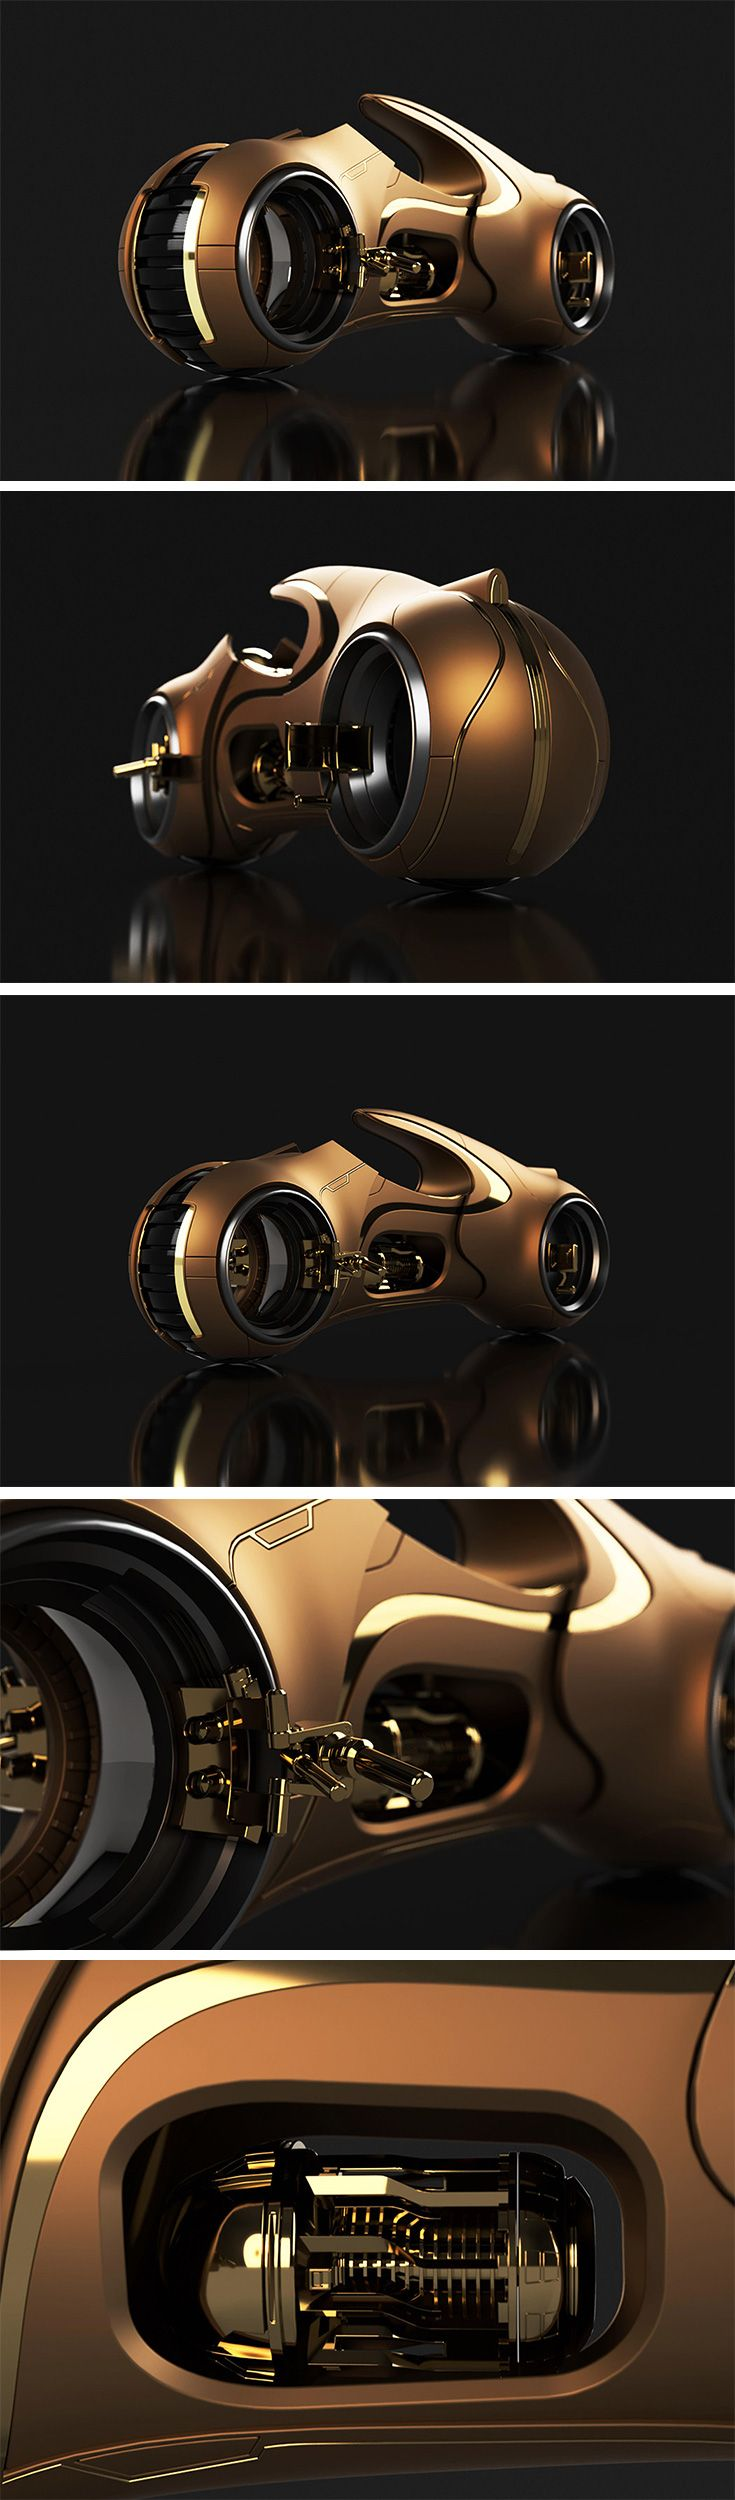 Designer Daniela Maria Guerrero takes a stab at reinterpreting the Tron Light Cycle. The concept explores the contrast of metallic materials applied to the  original light concept but maintains the form and the modeling details to be as similar as possible to that of Simon's original work. The gold detail warms  things up, but it still runs on pure liquid energy! Like the original, the vehicle's speed can be increased by pushing the ends further apart.